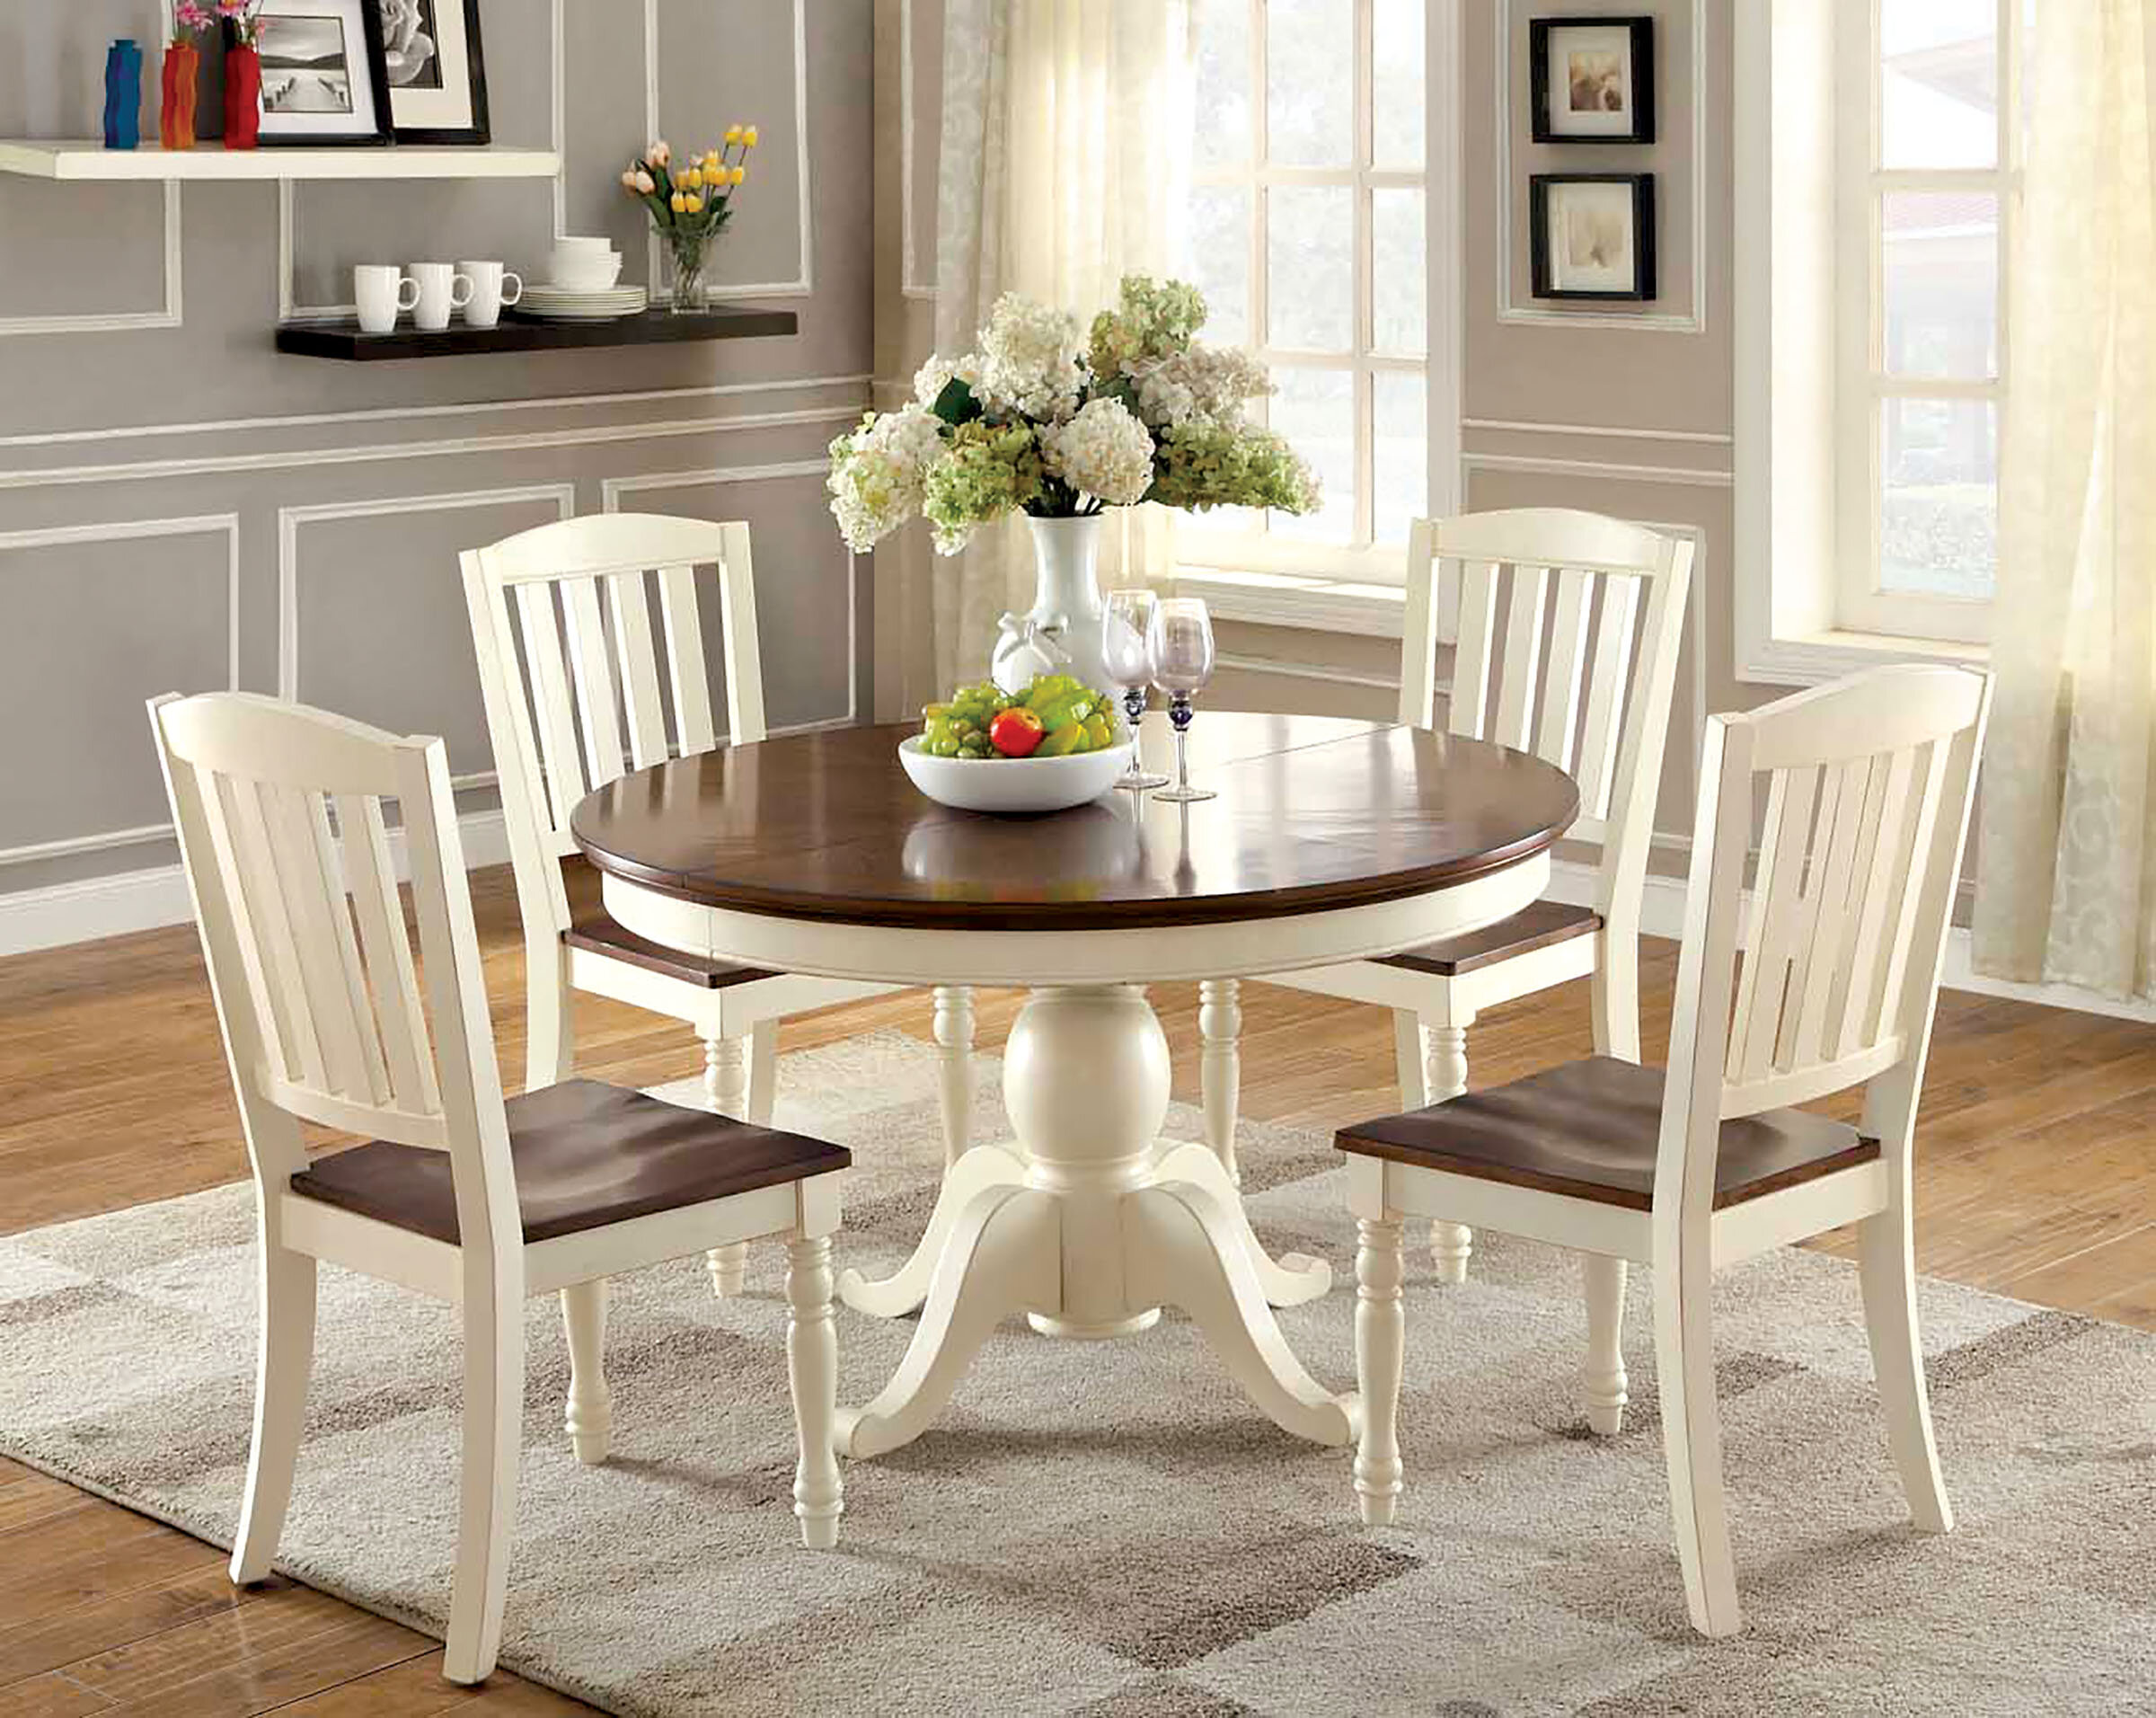 Oval Solid Wood Dining Table